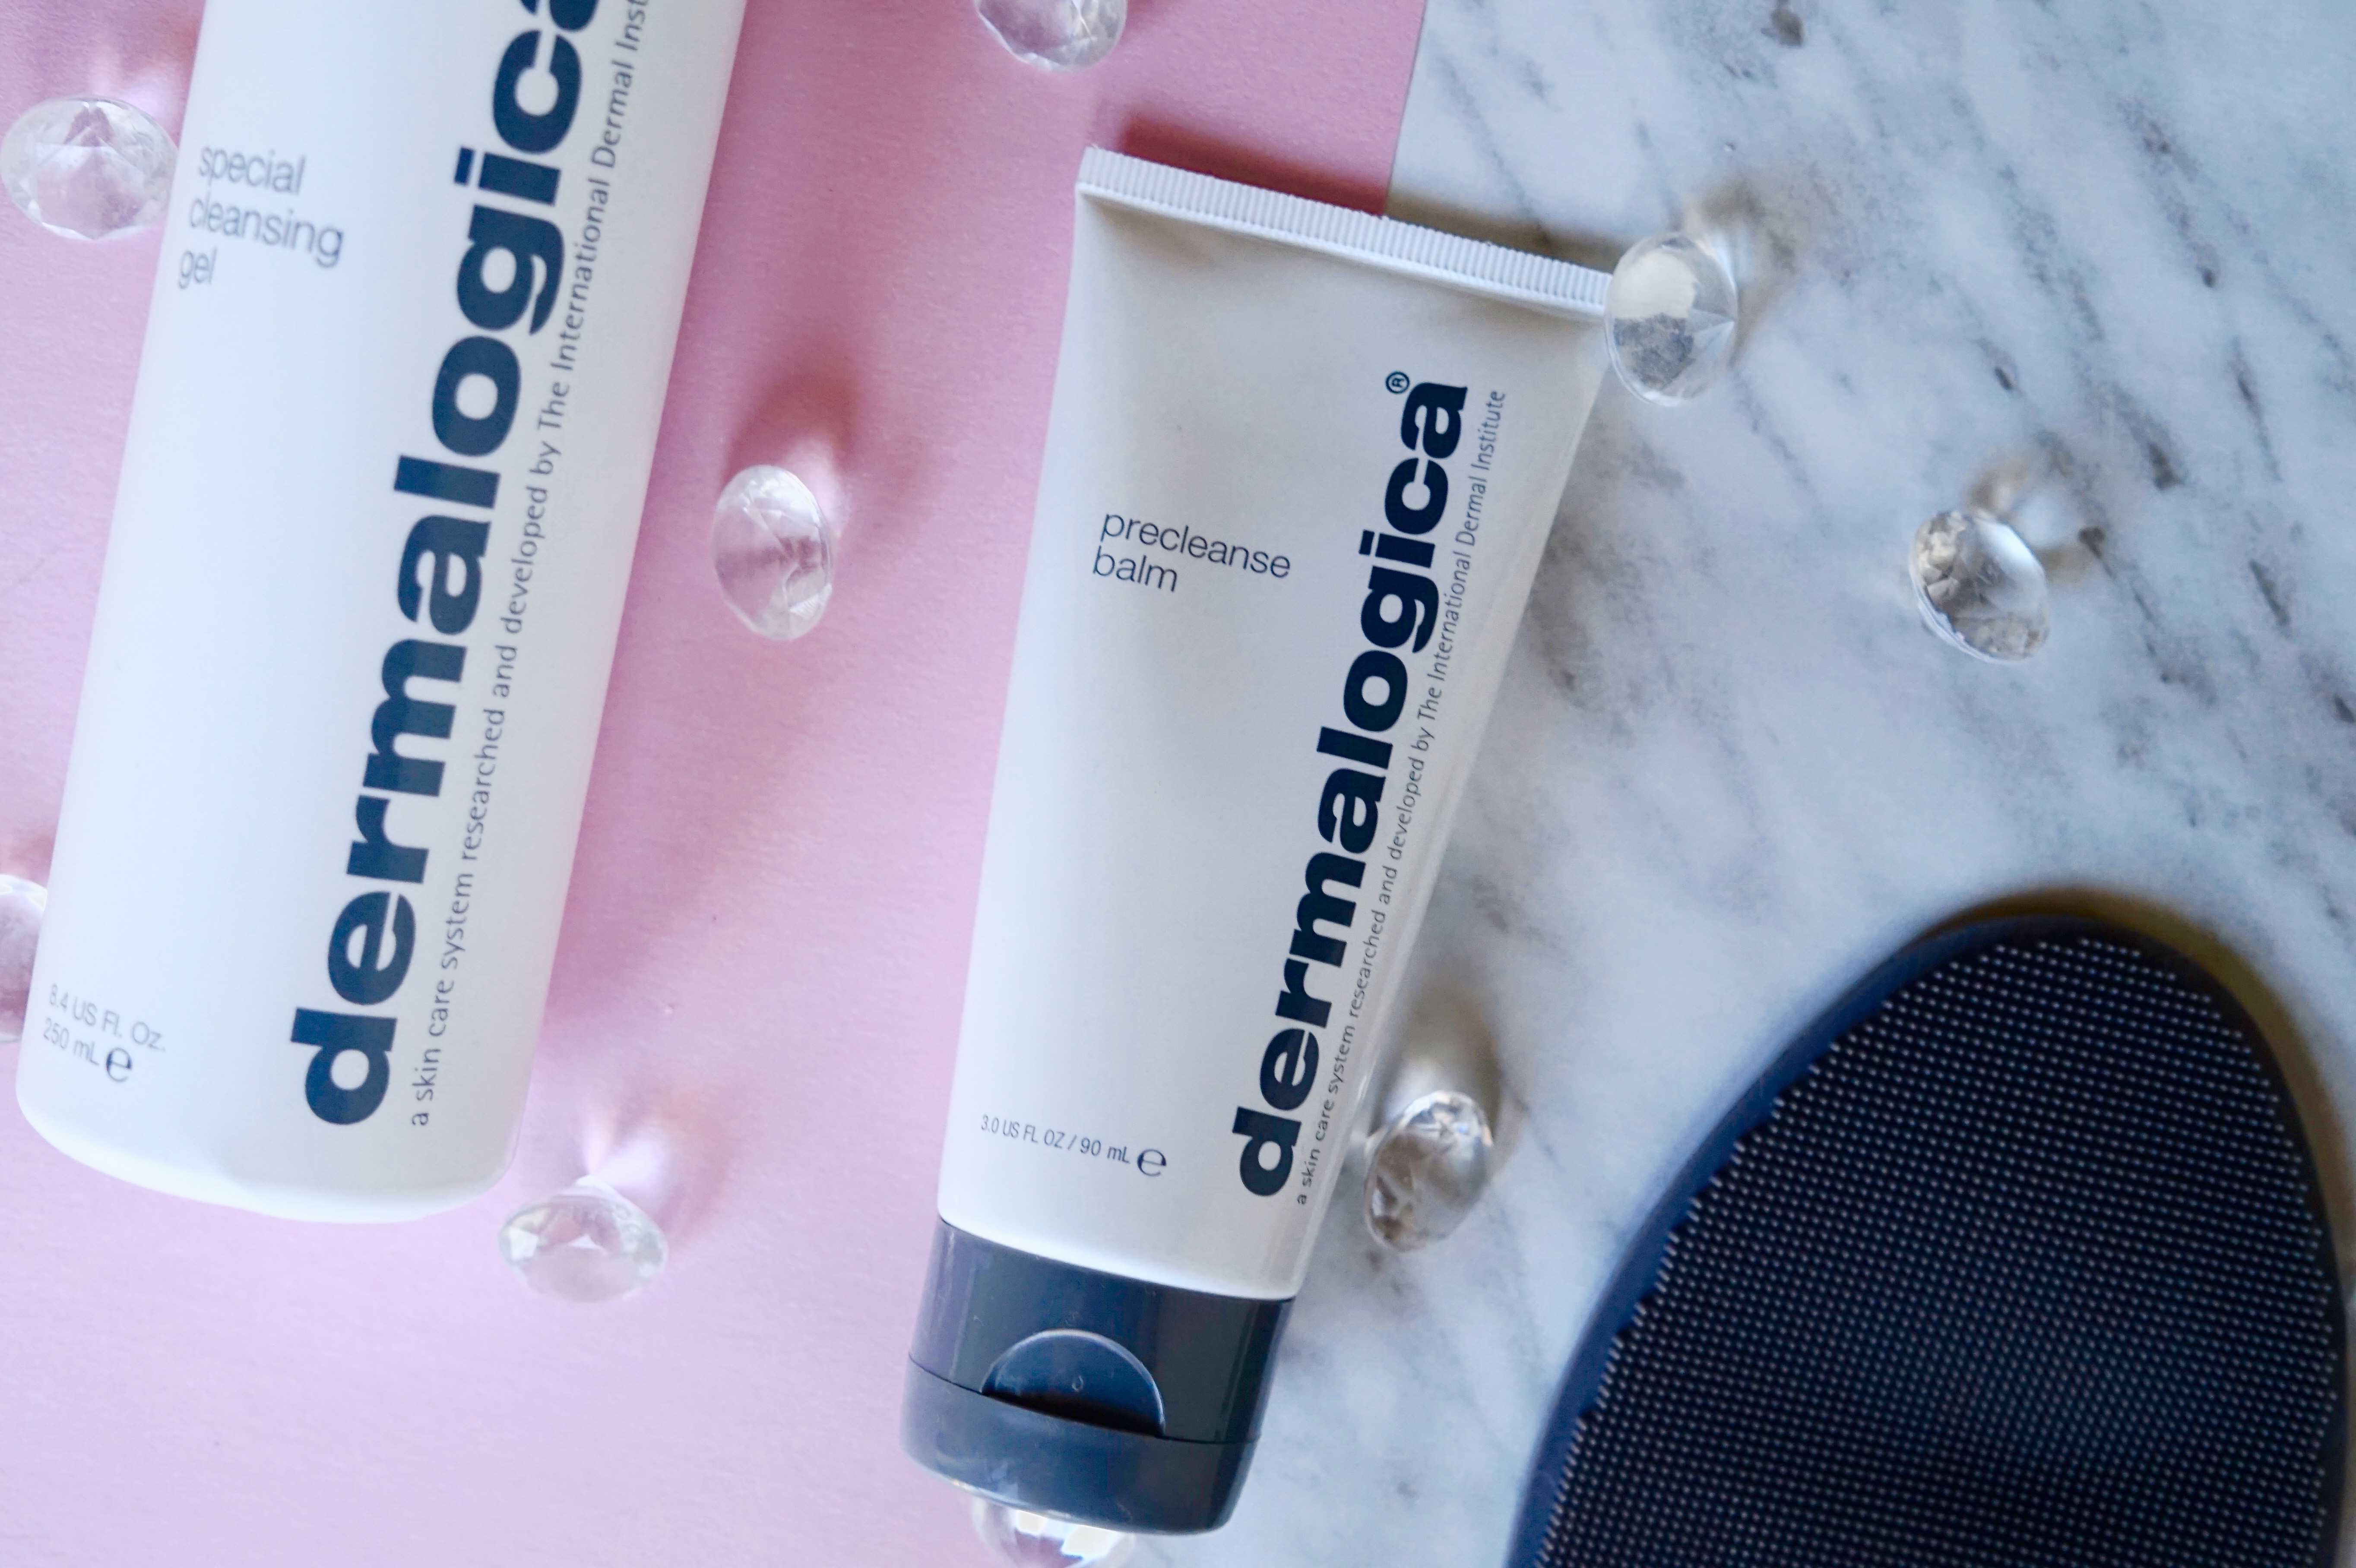 Precleanse Cleansing Oil by Dermalogica #20